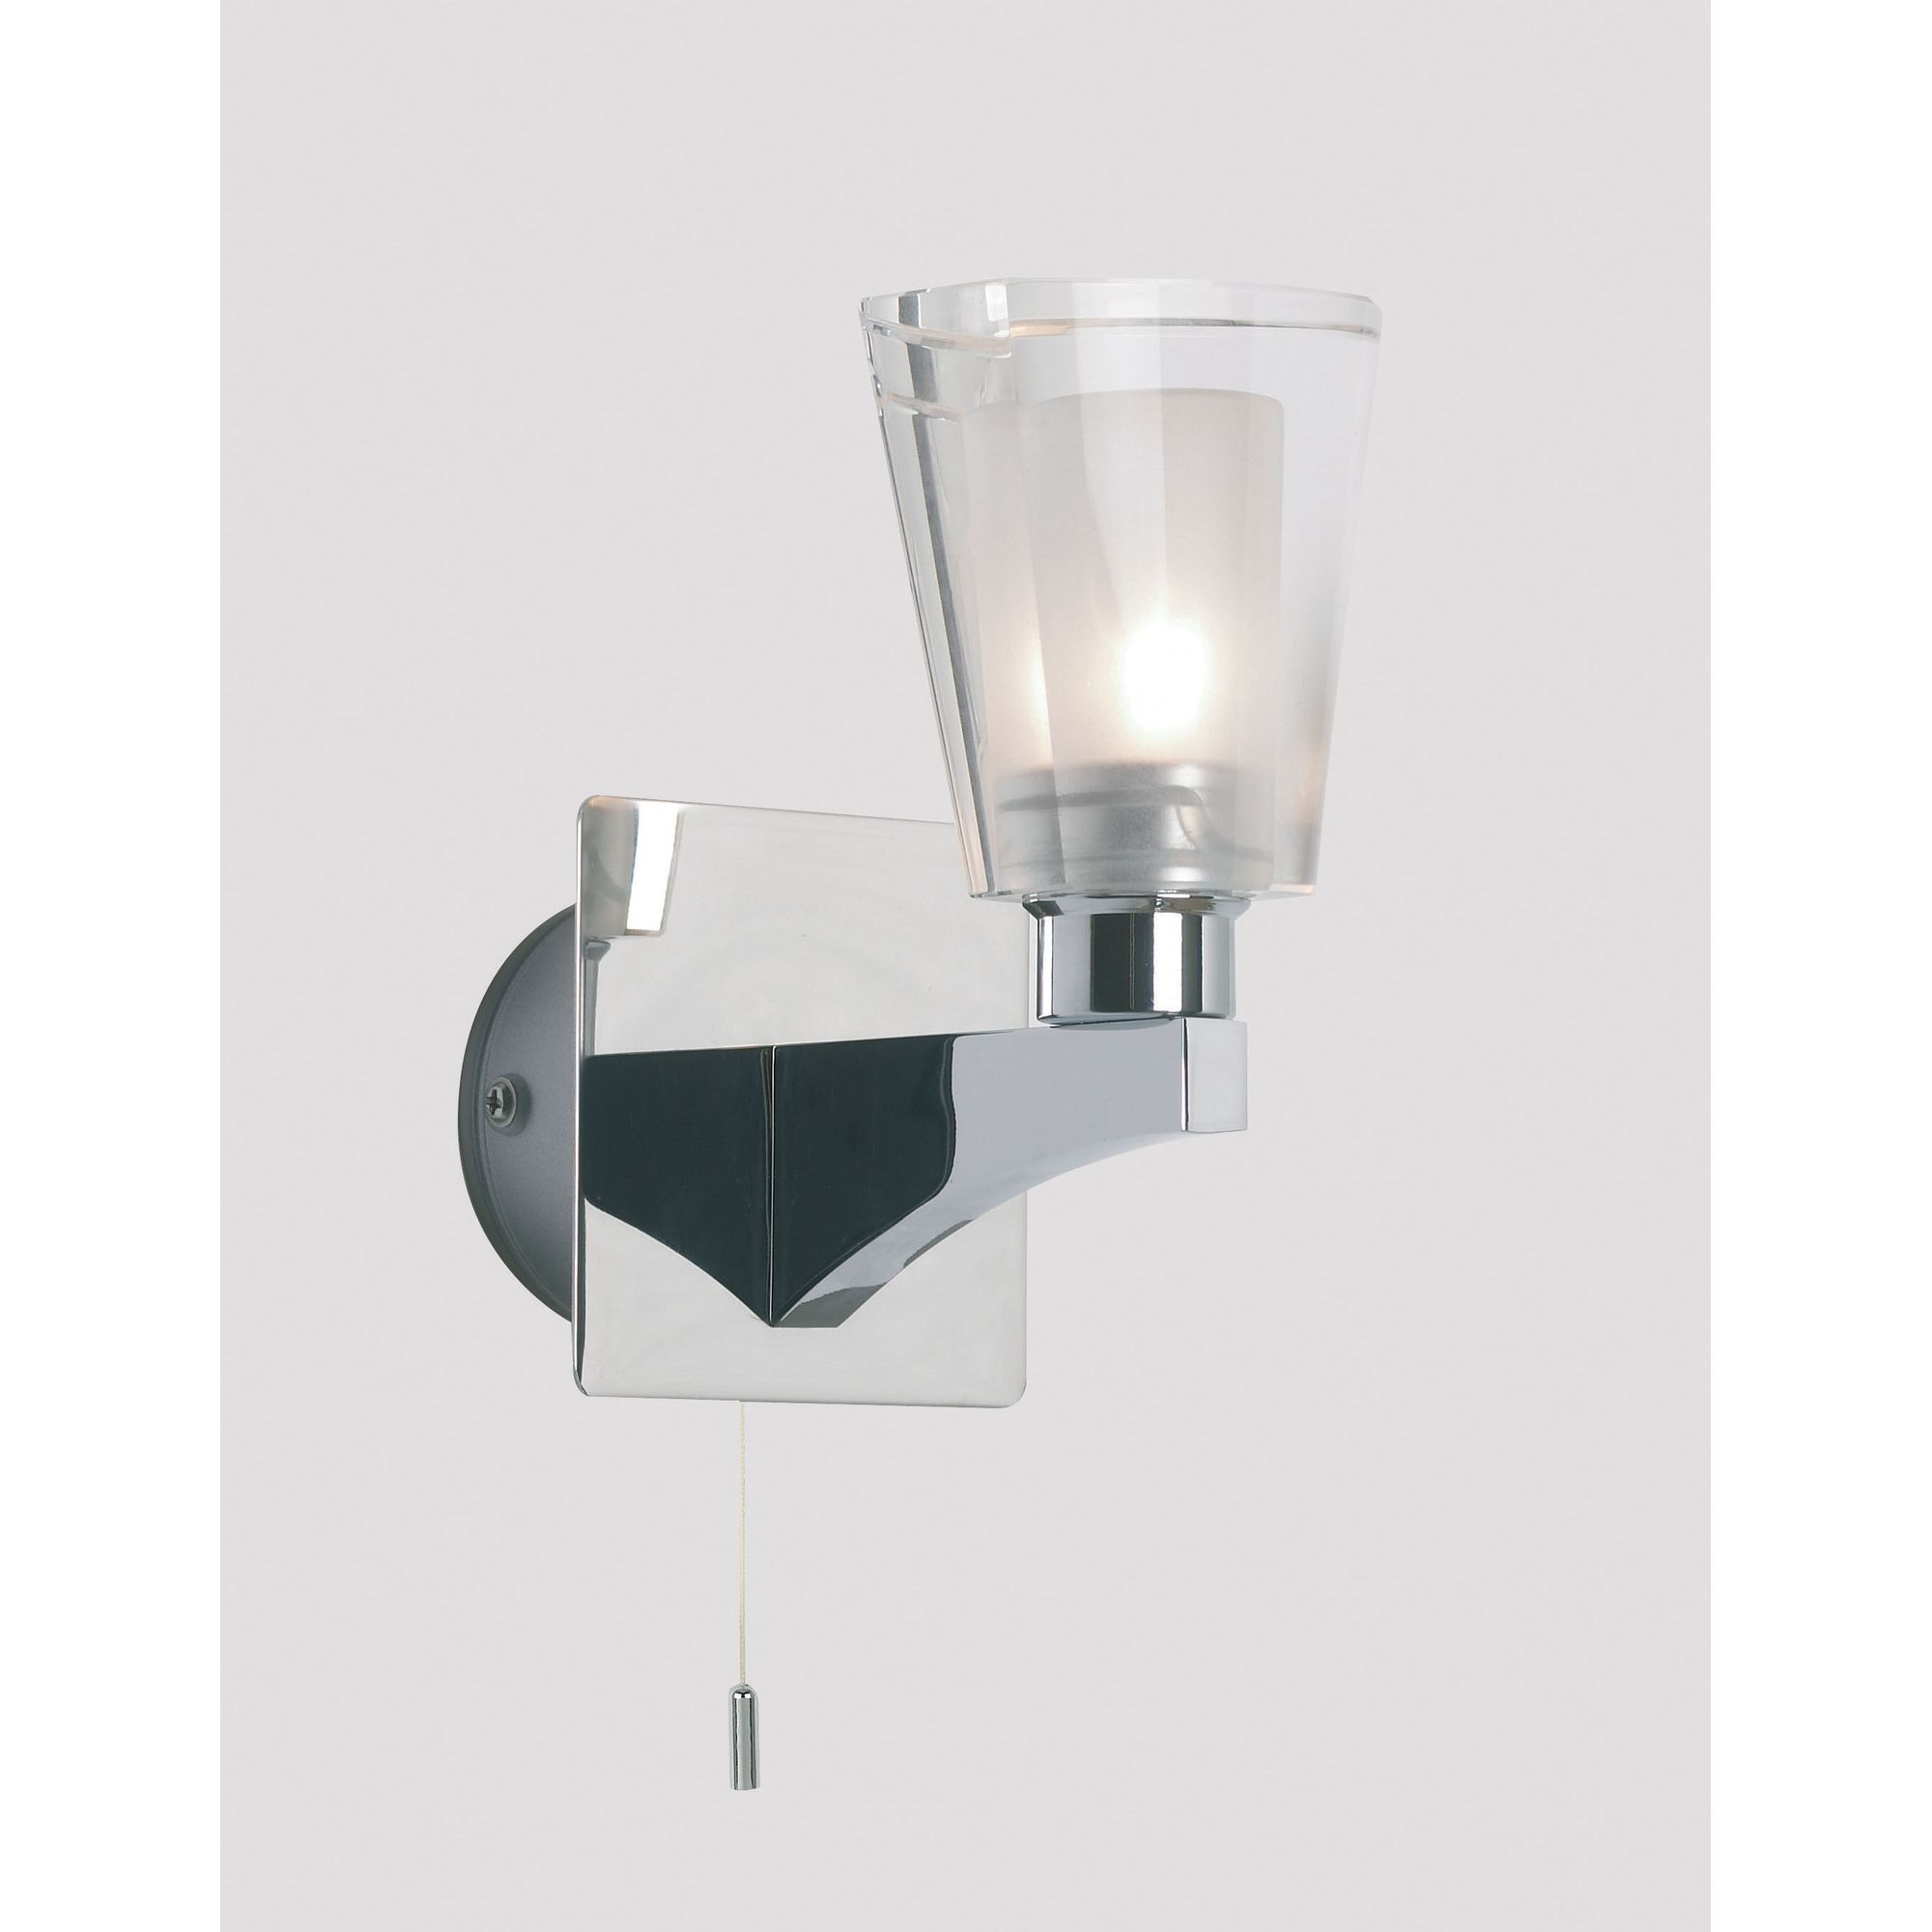 Chrome Garden Wall Lights : Home and garden > Lighting: Massive Ice One Light Wall Bracket in Chrome - Special Offers